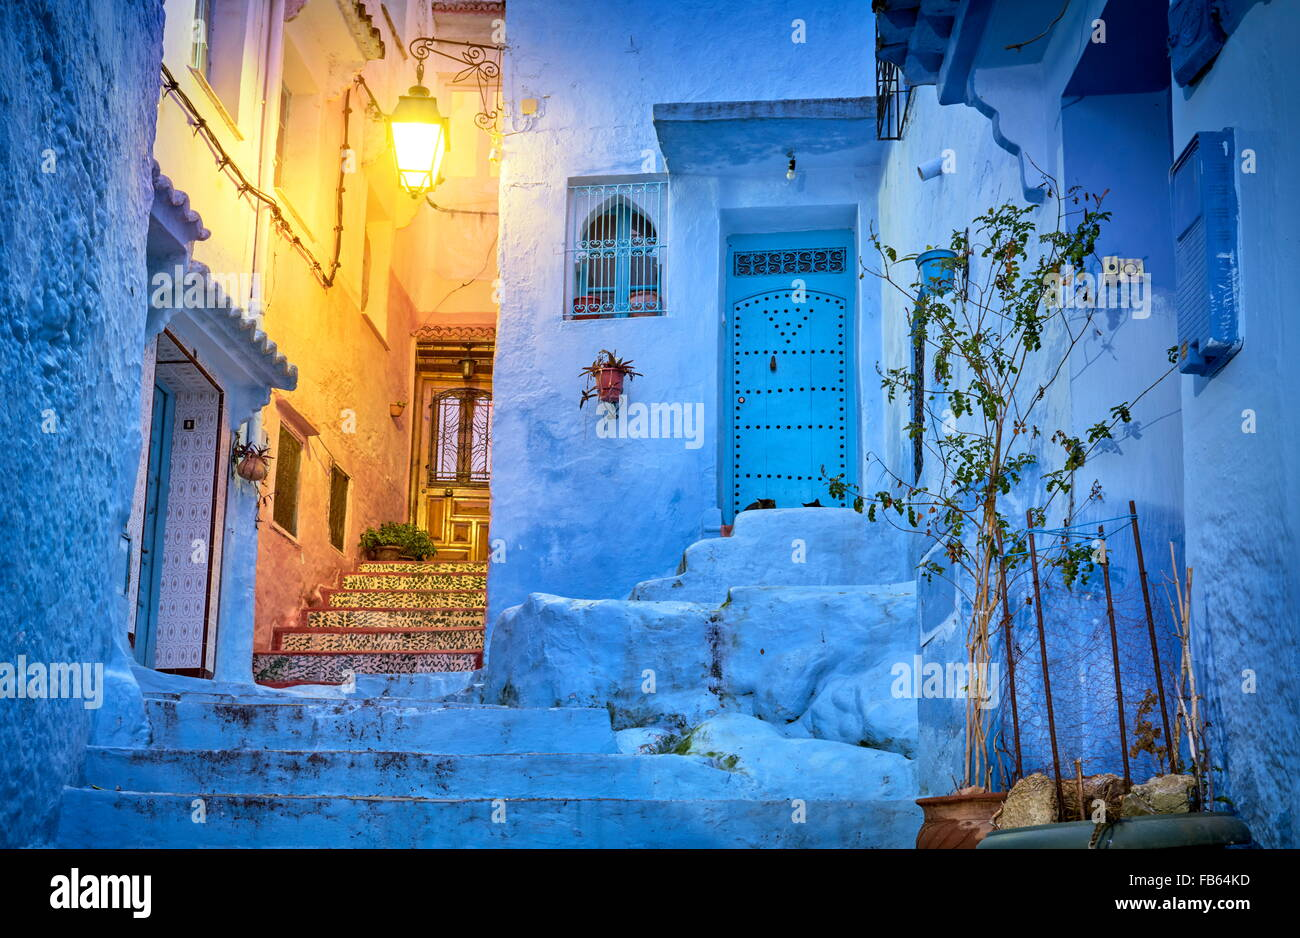 Blue painted walls in old medina of Chefchaouen (Chaouen). Morocco, Africa - Stock Image